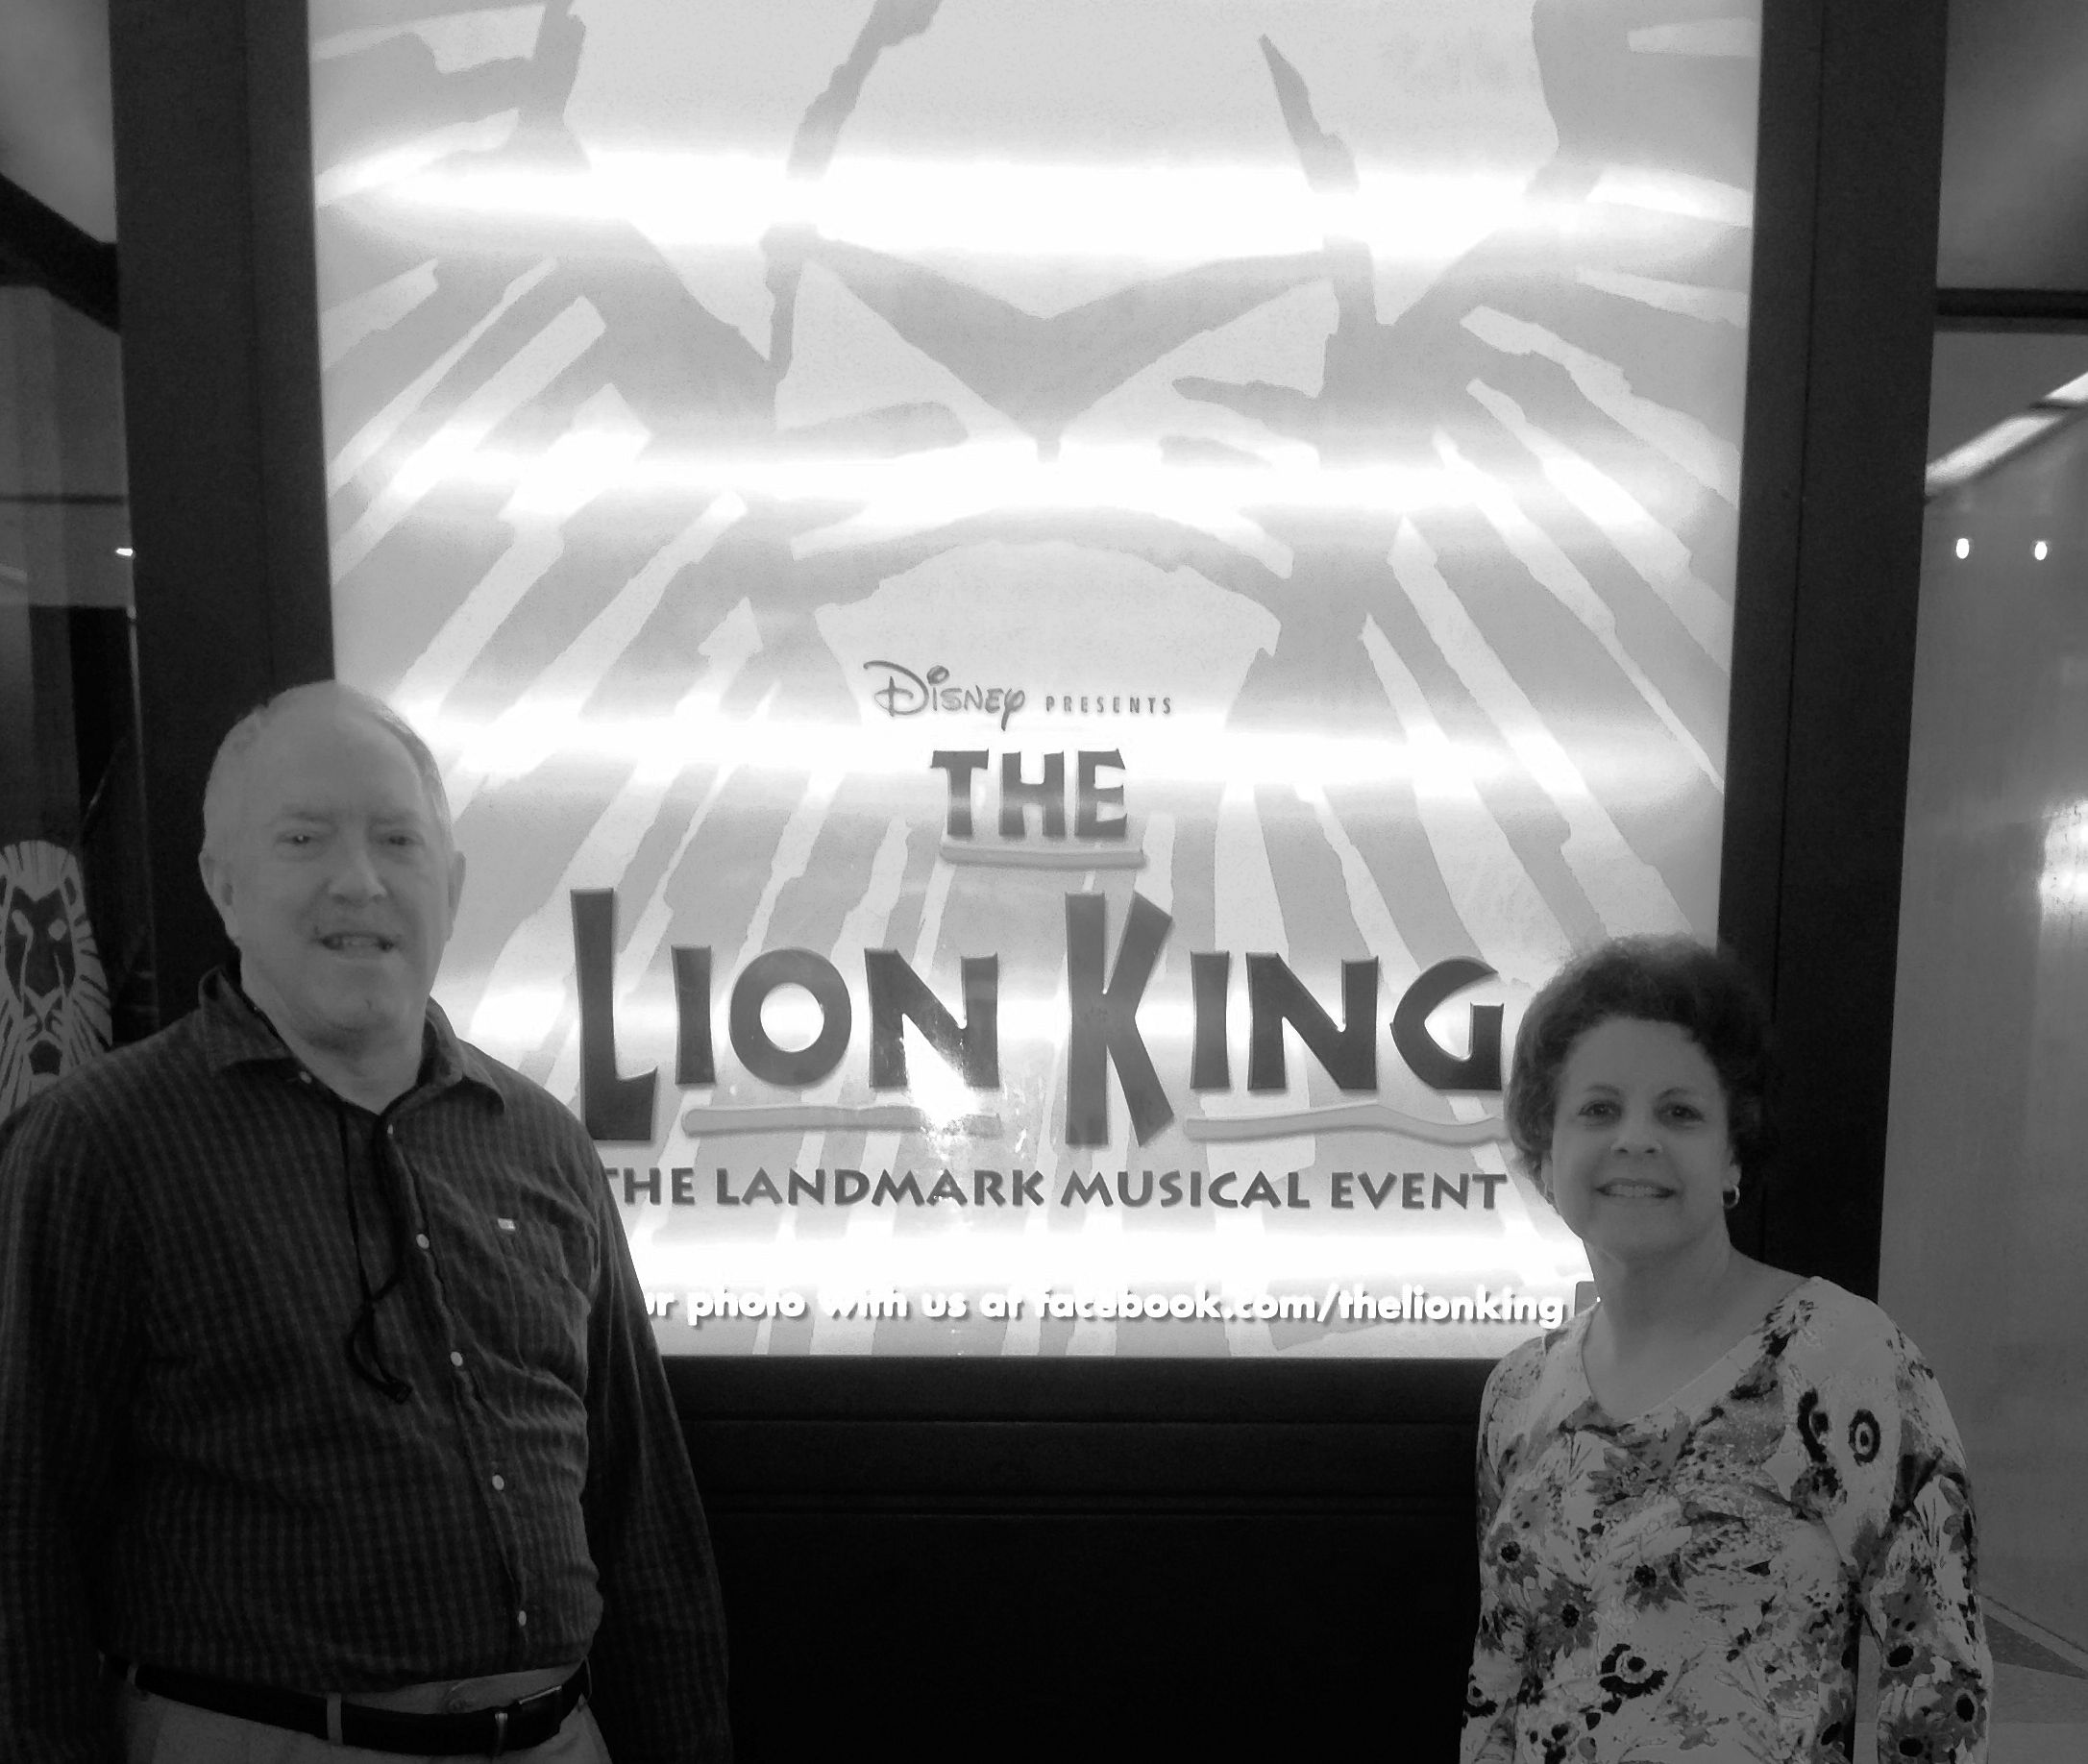 couple in front of THE LION KING sign